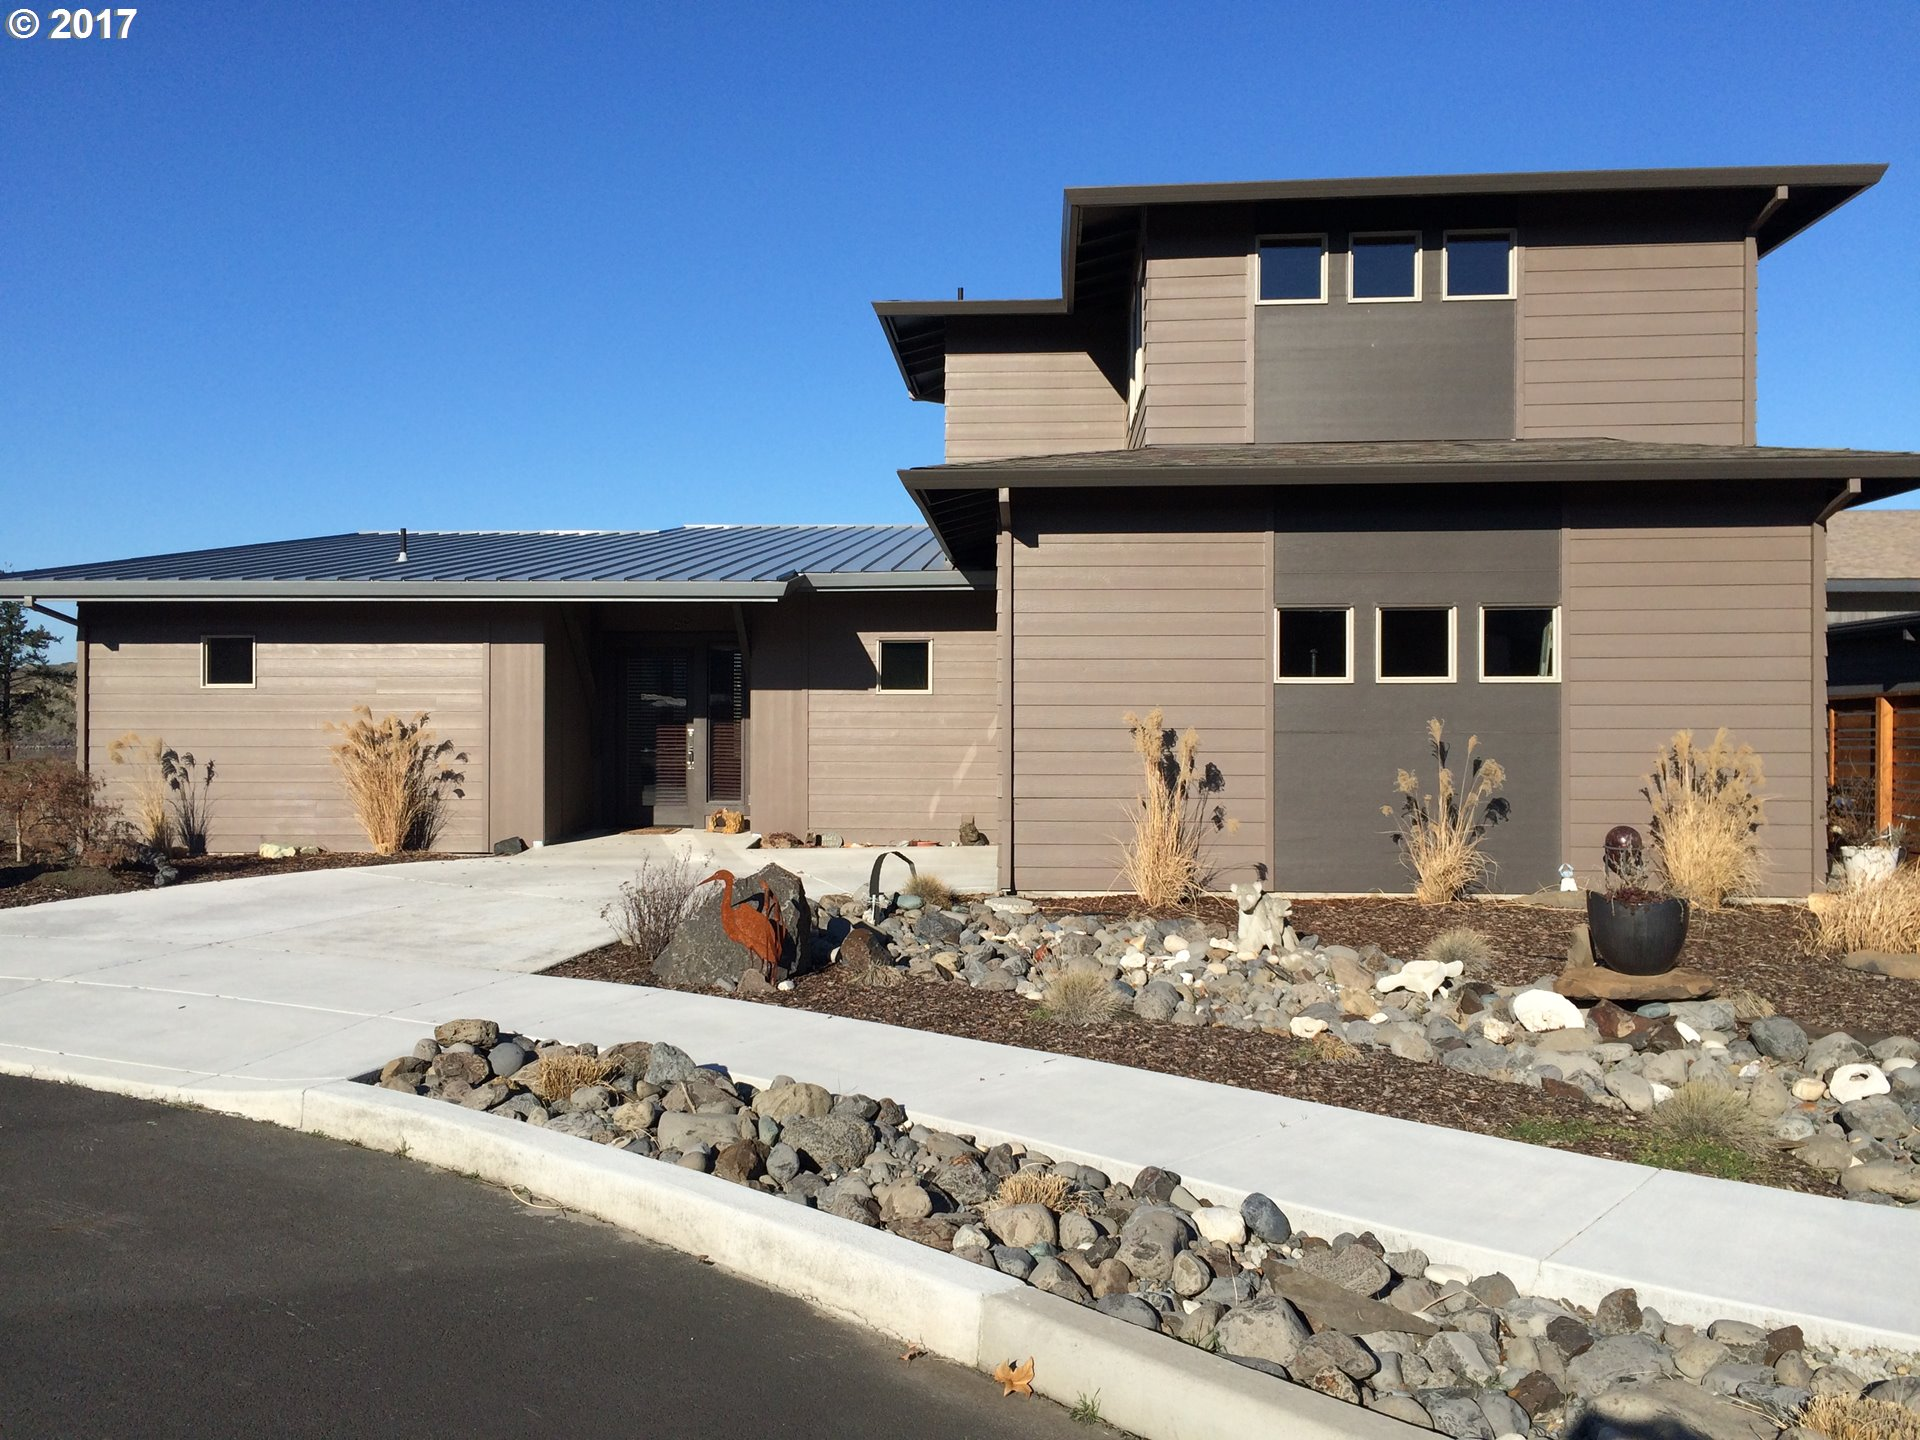 169 BLUE HERON CT, The Dalles, OR 97058